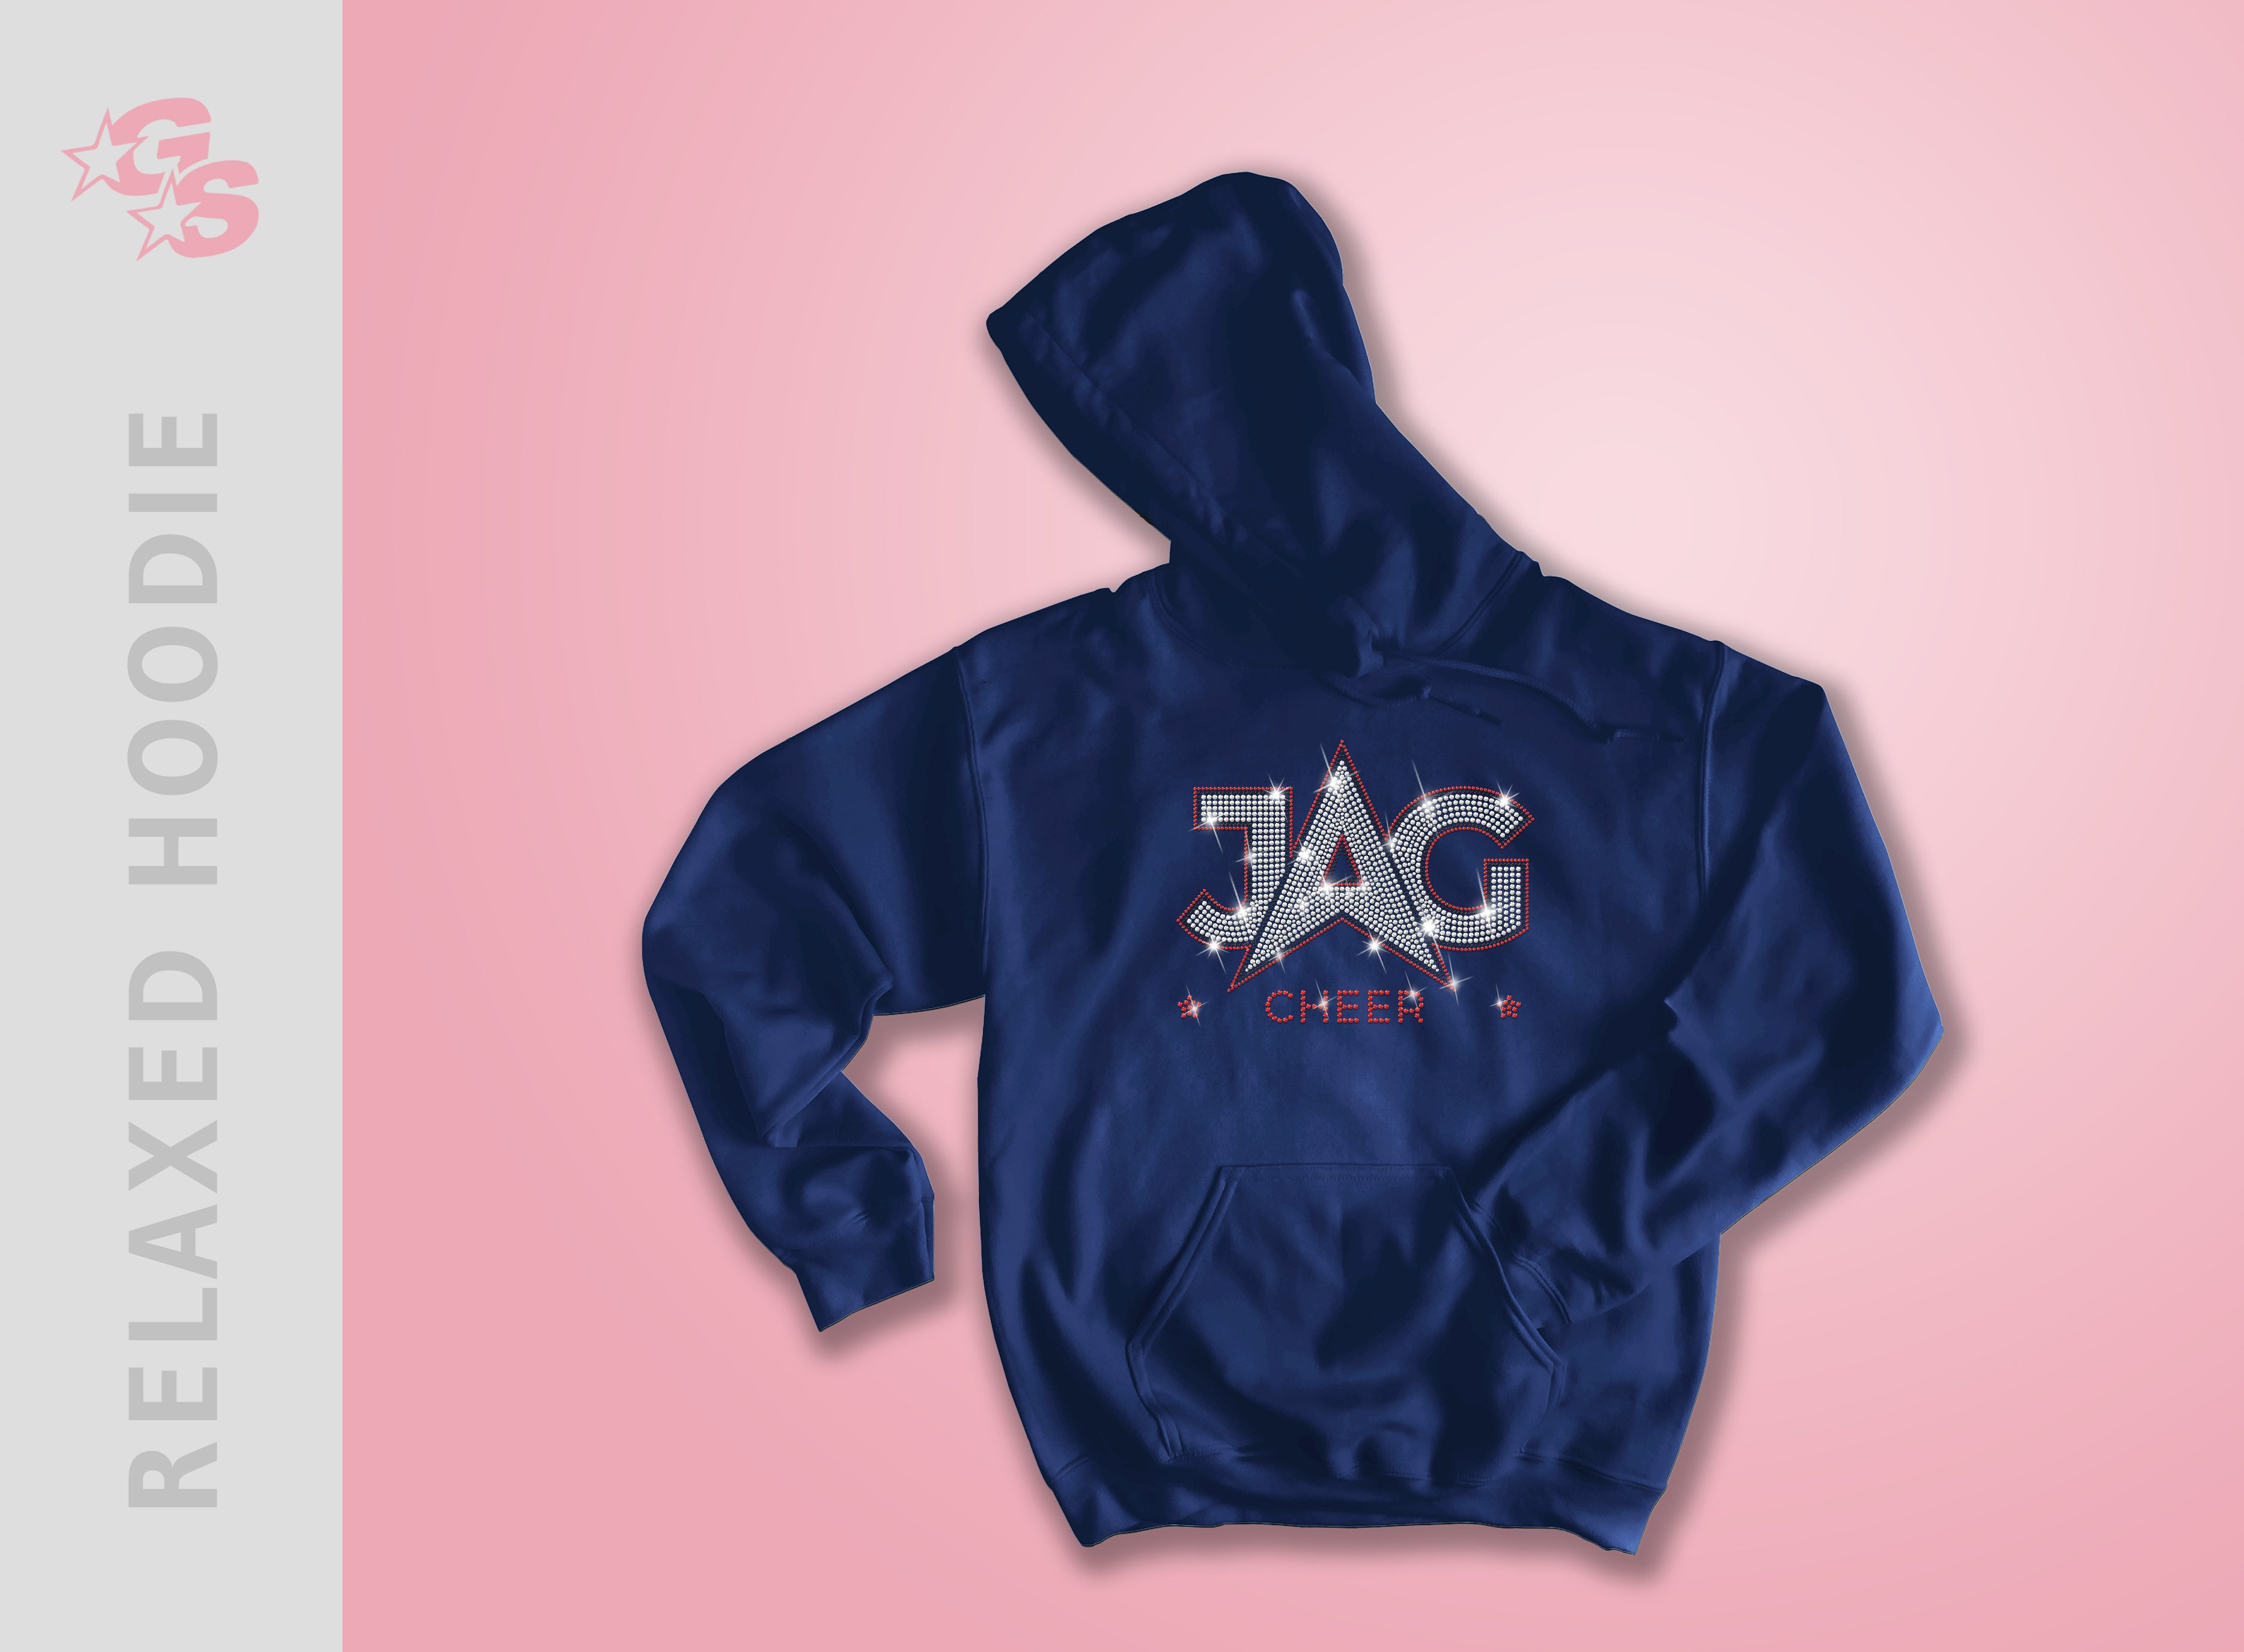 Jag Cheer Relaxed Hoodie